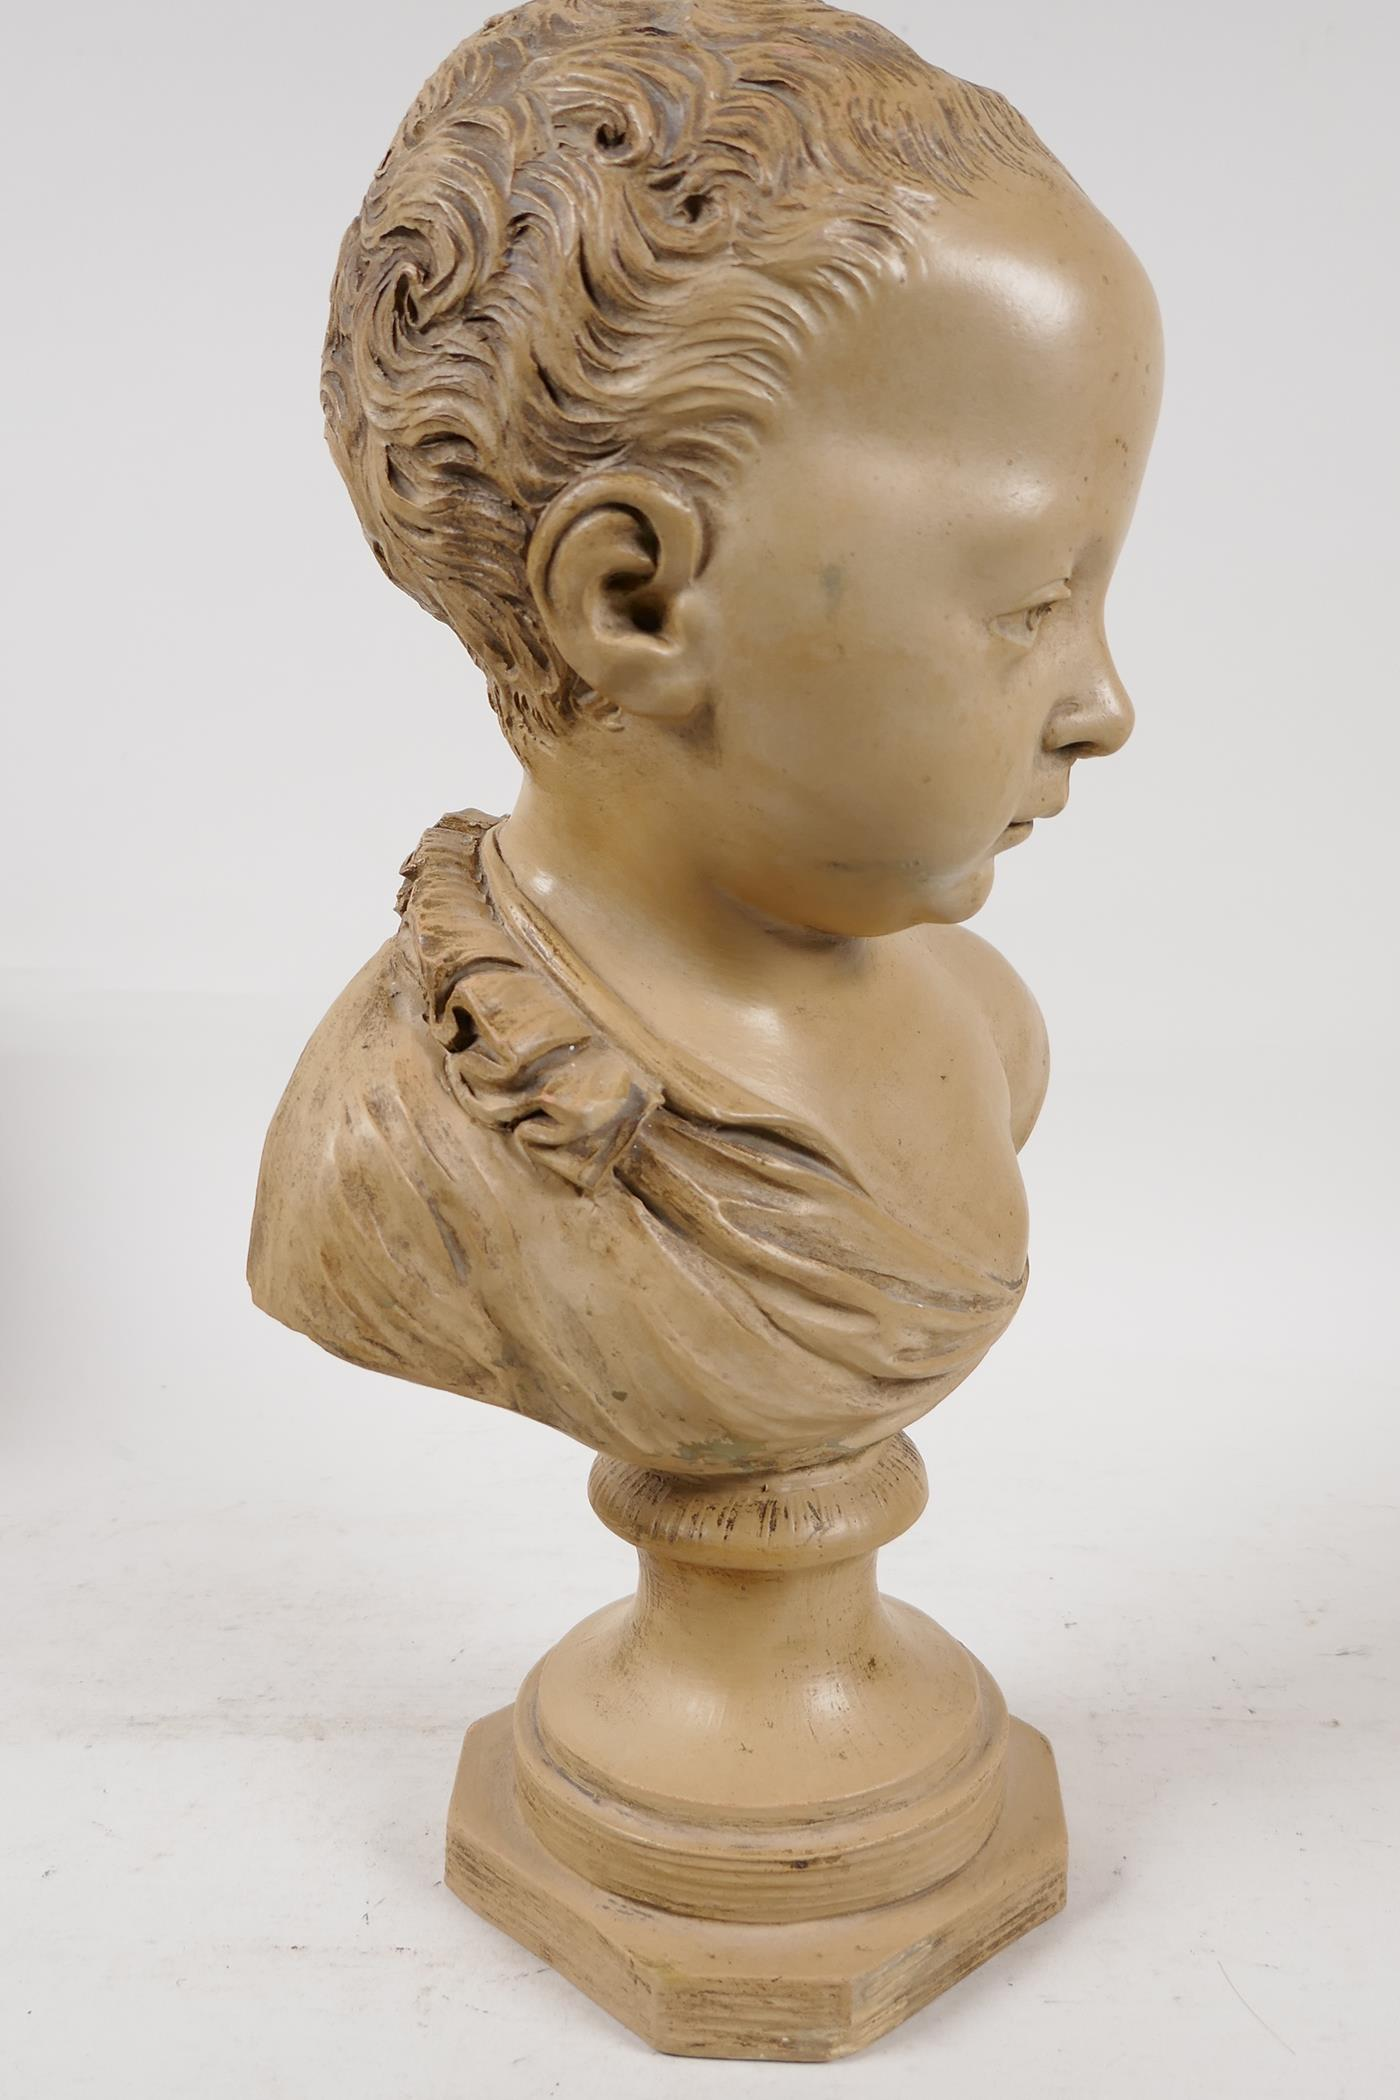 """A terracotta bust of a chld, after J.A. Houdon, 13"""" high - Image 2 of 6"""